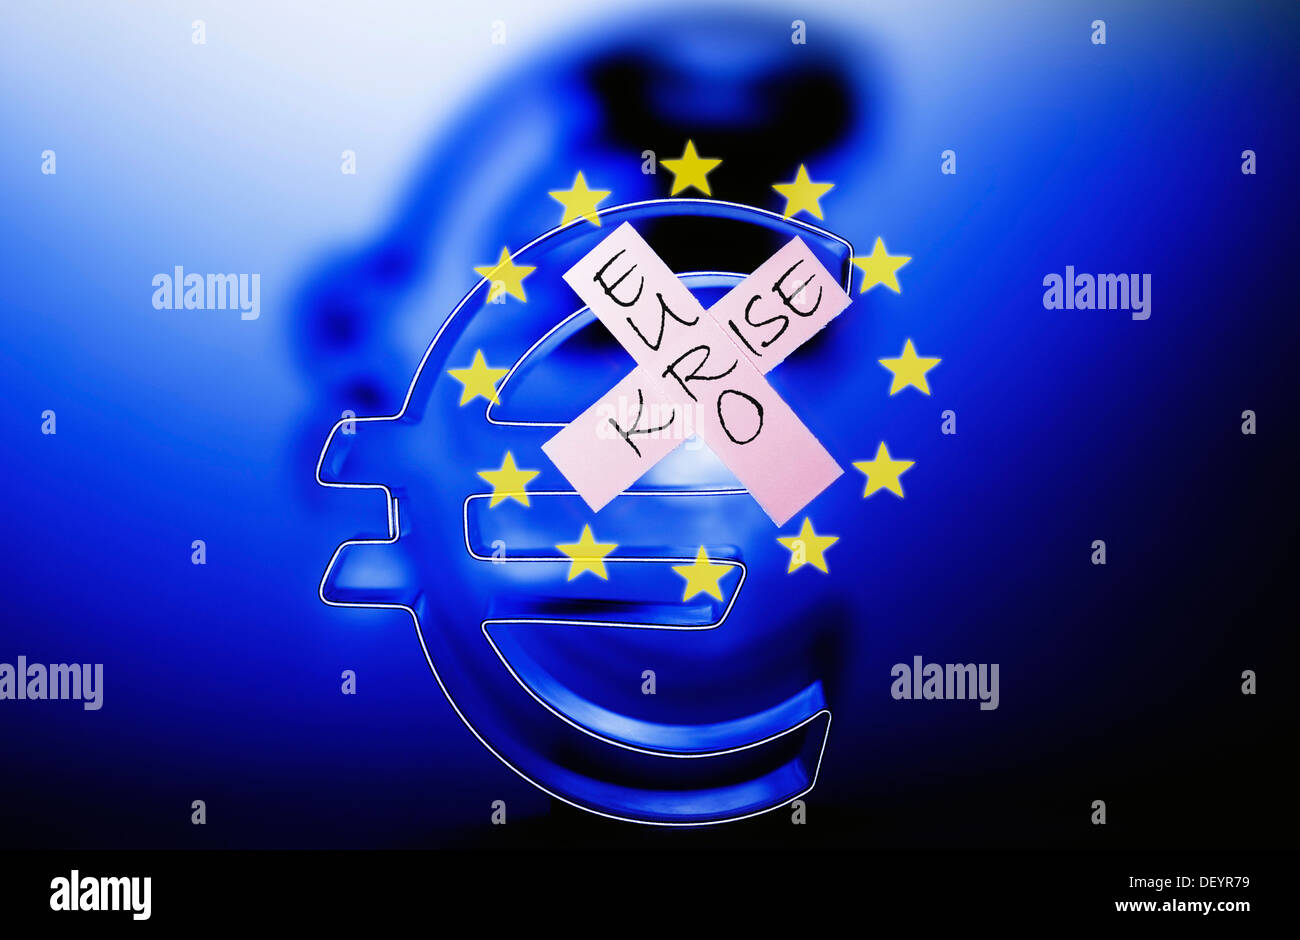 Euro symbol with a plaster with the words Euro Krise on the EU flag, symbolic image of the euro crisis - Stock Image